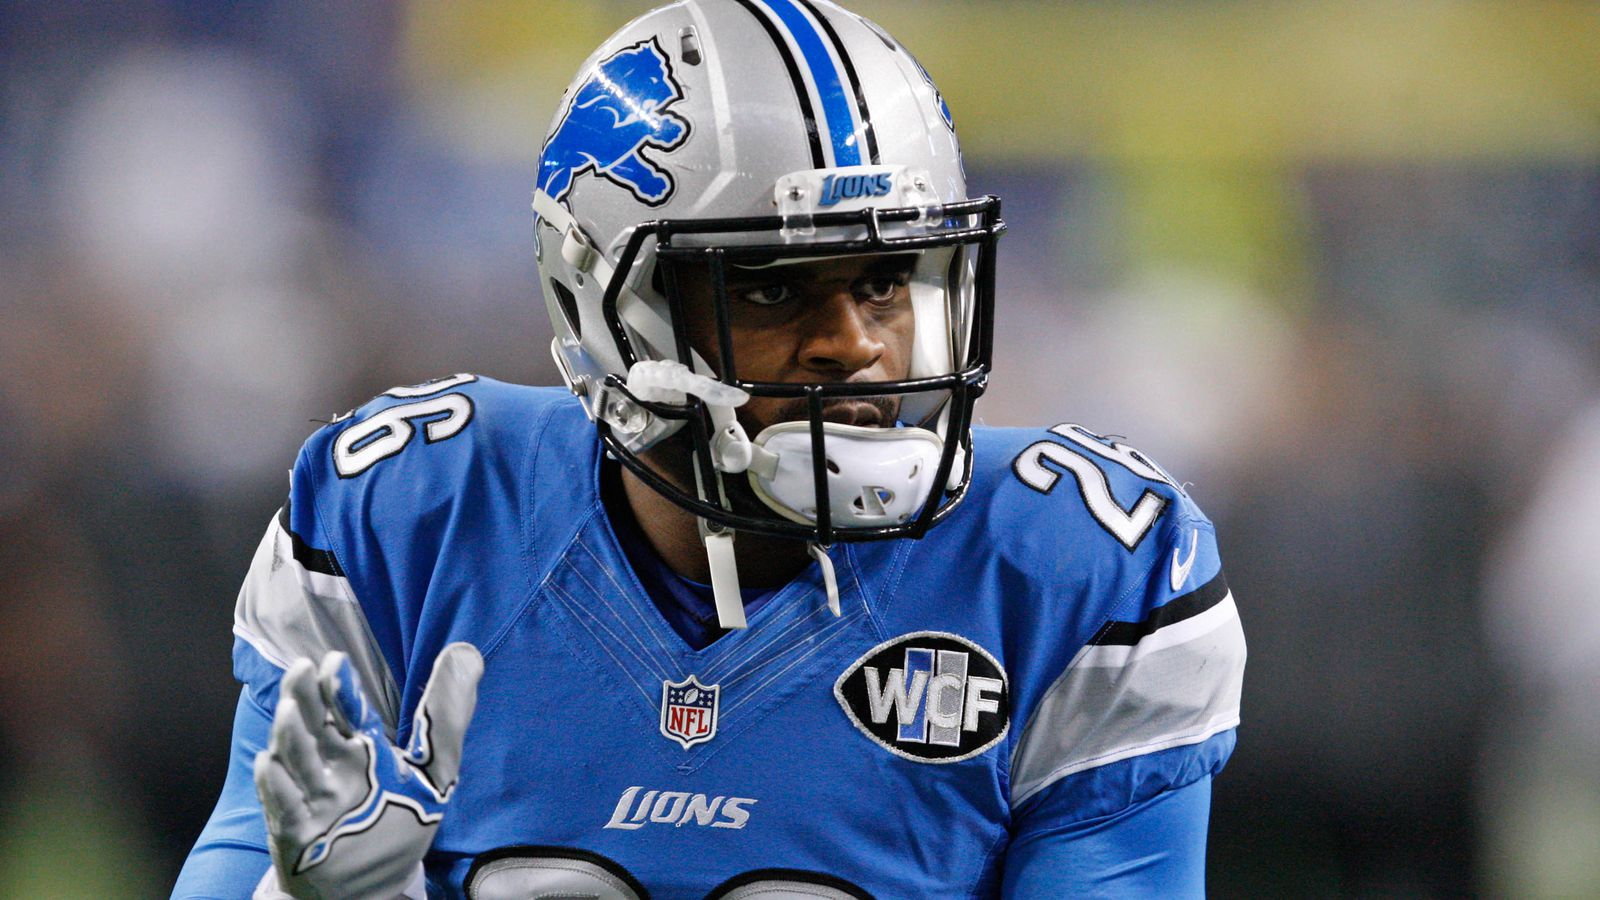 NFL Jerseys Online - Lions place Ryan Spadola on injury reserve, activate Don Carey ...